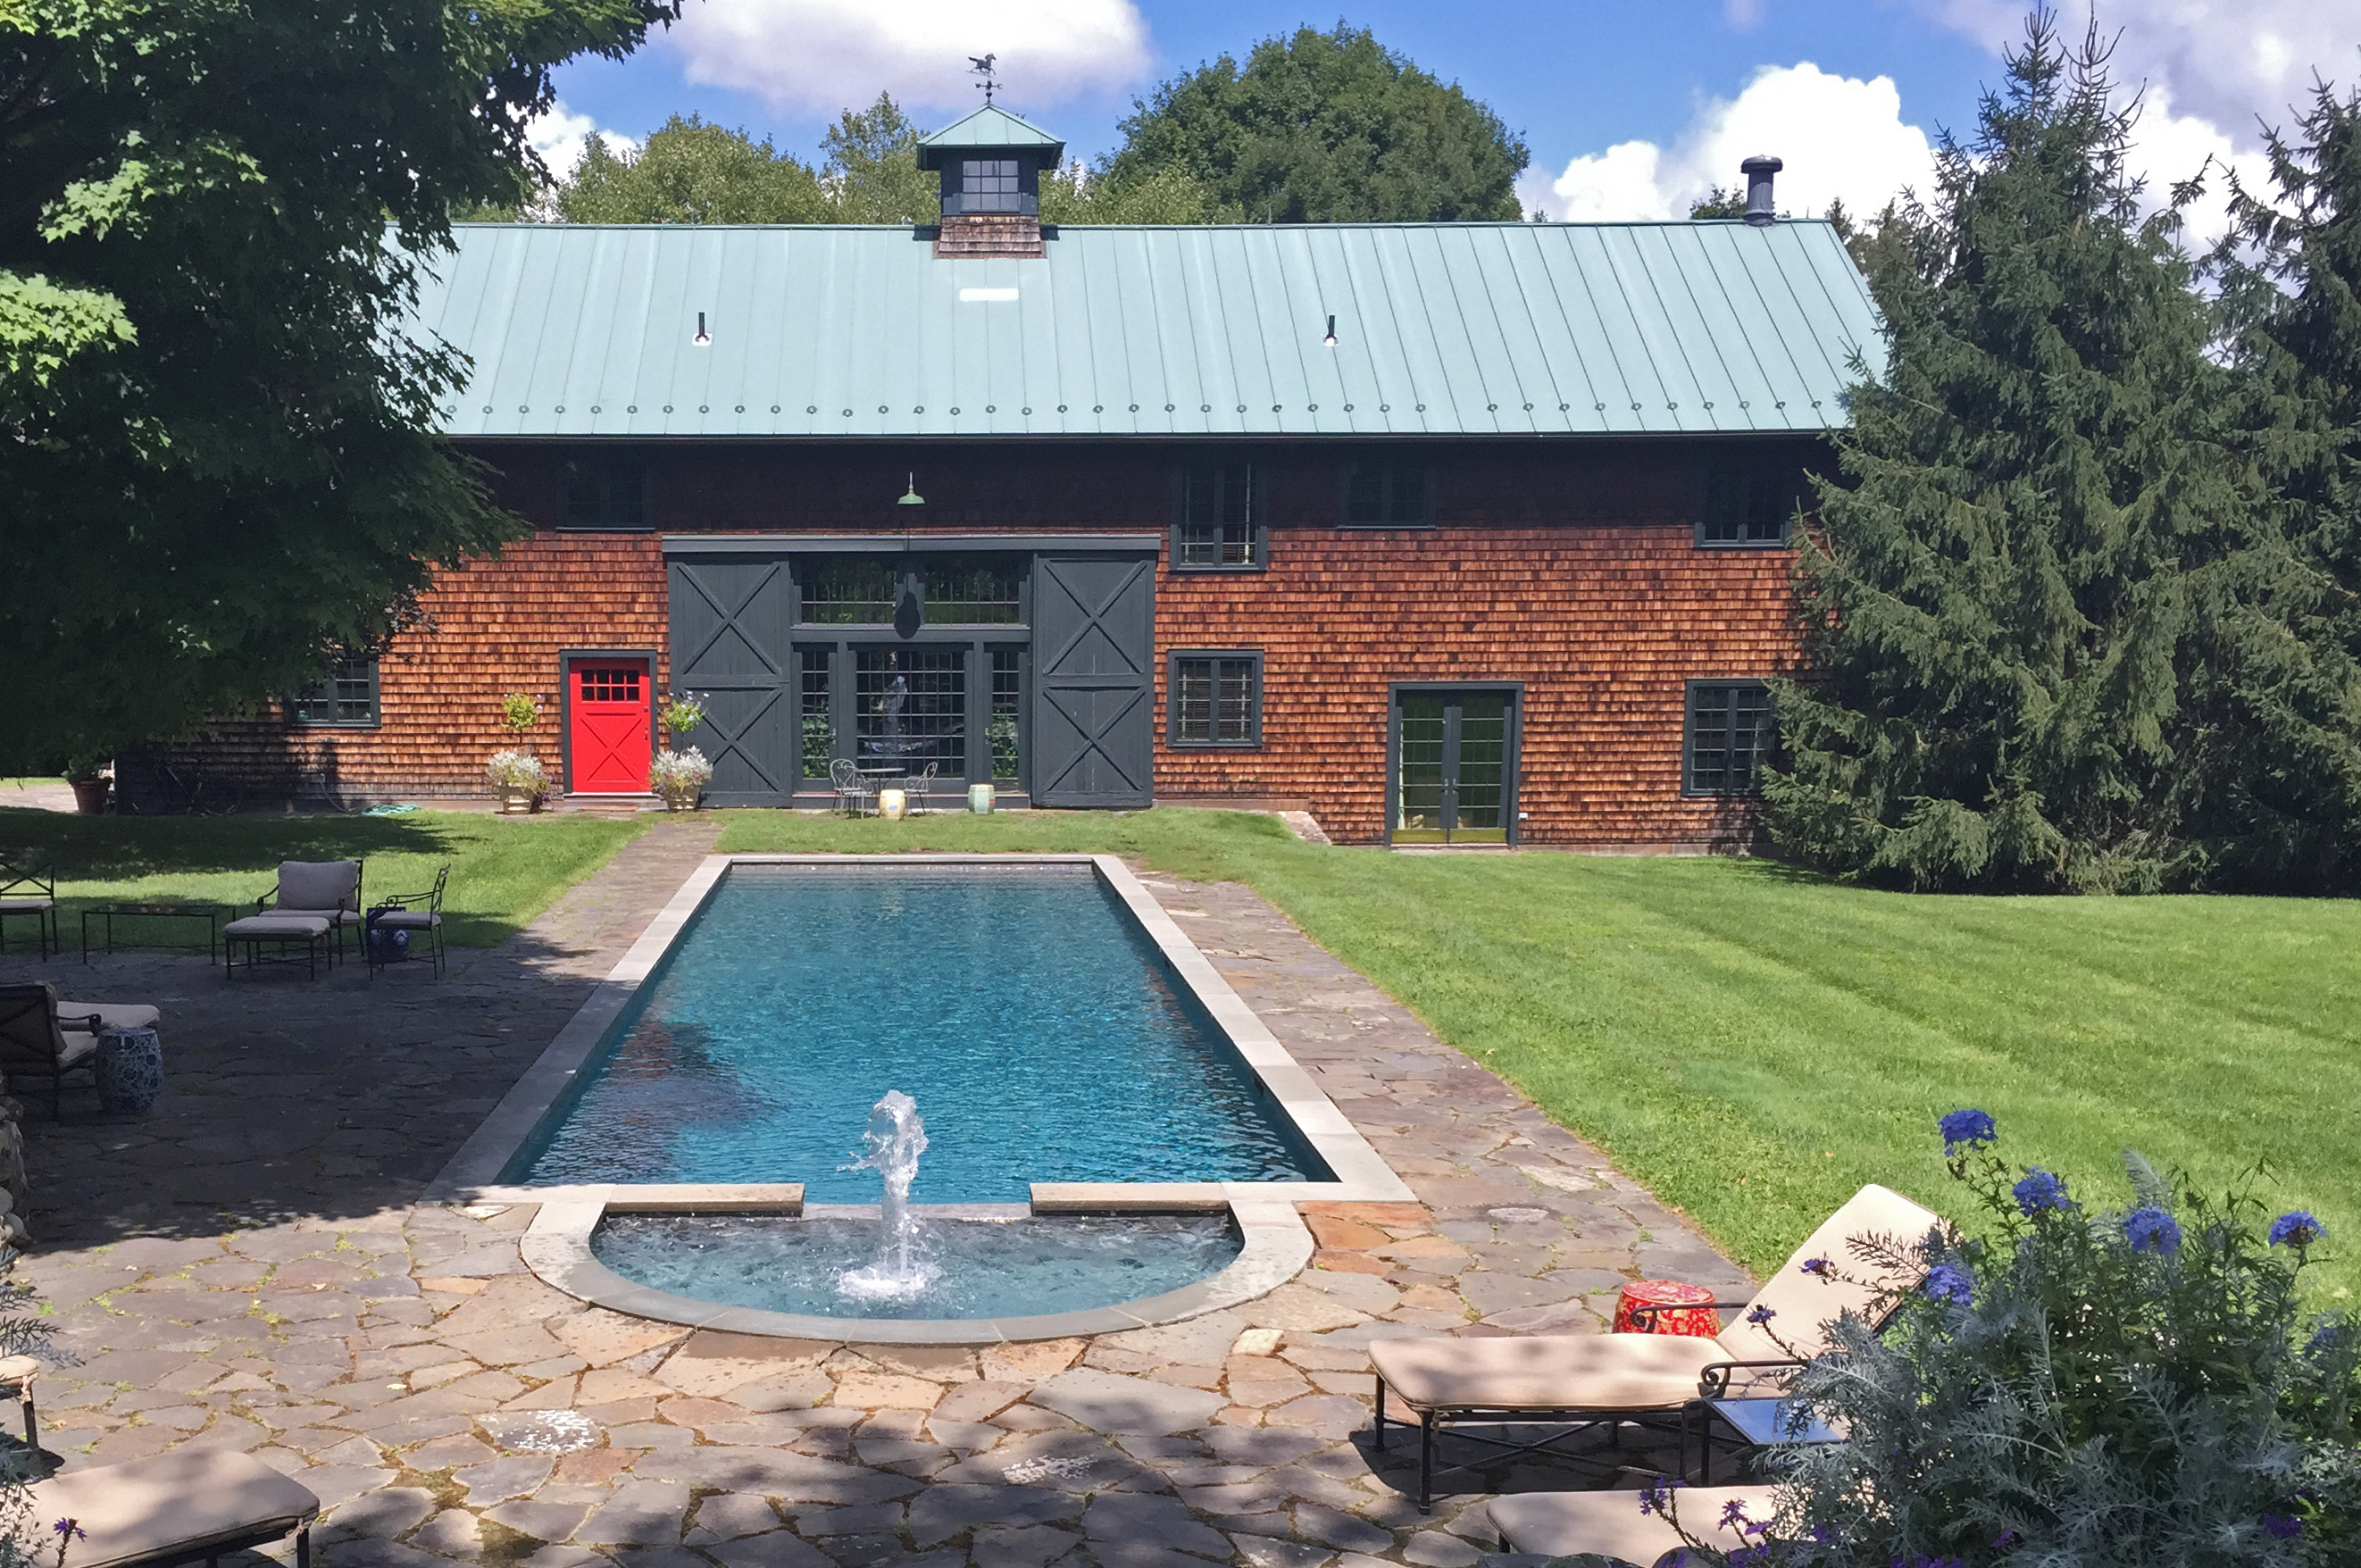 Single Family Home for Rent at Converted Barn Rental 8 Old Killearn Road Millbrook, New York 12545 United States